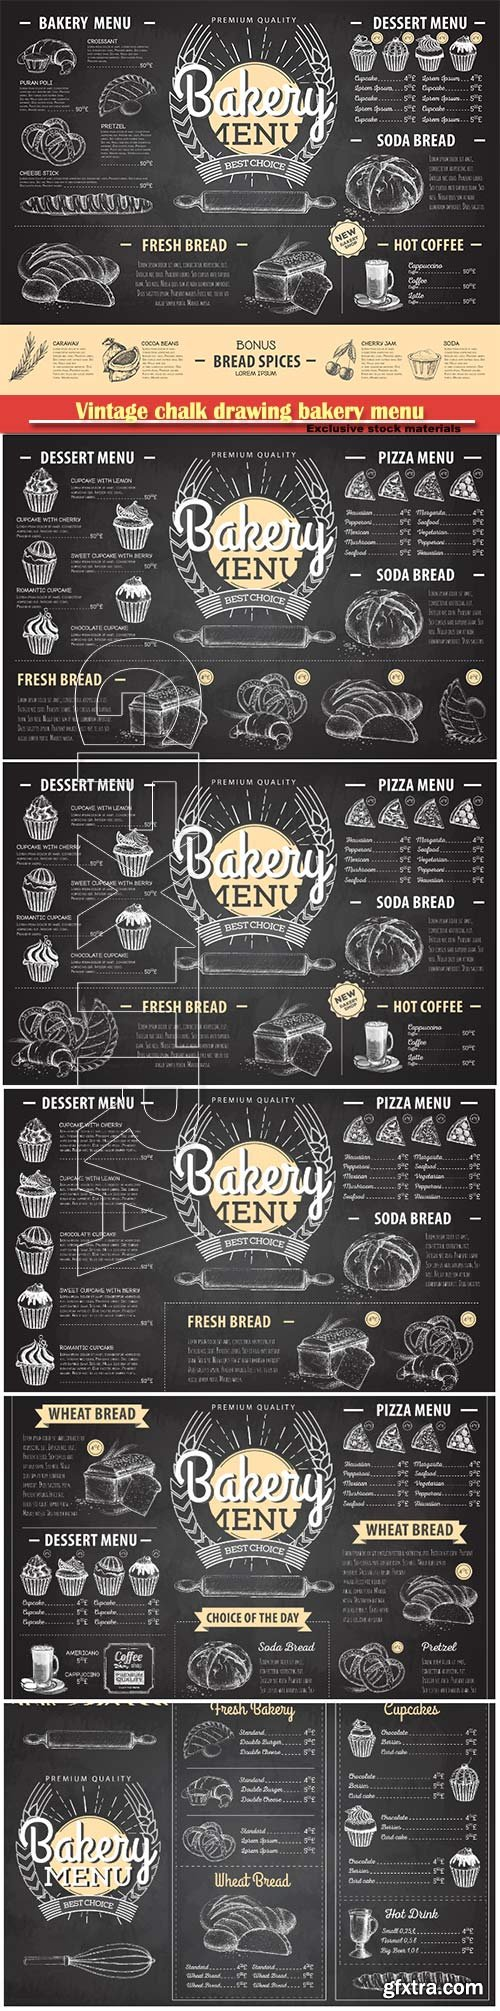 Vintage chalk drawing bakery menu vector design